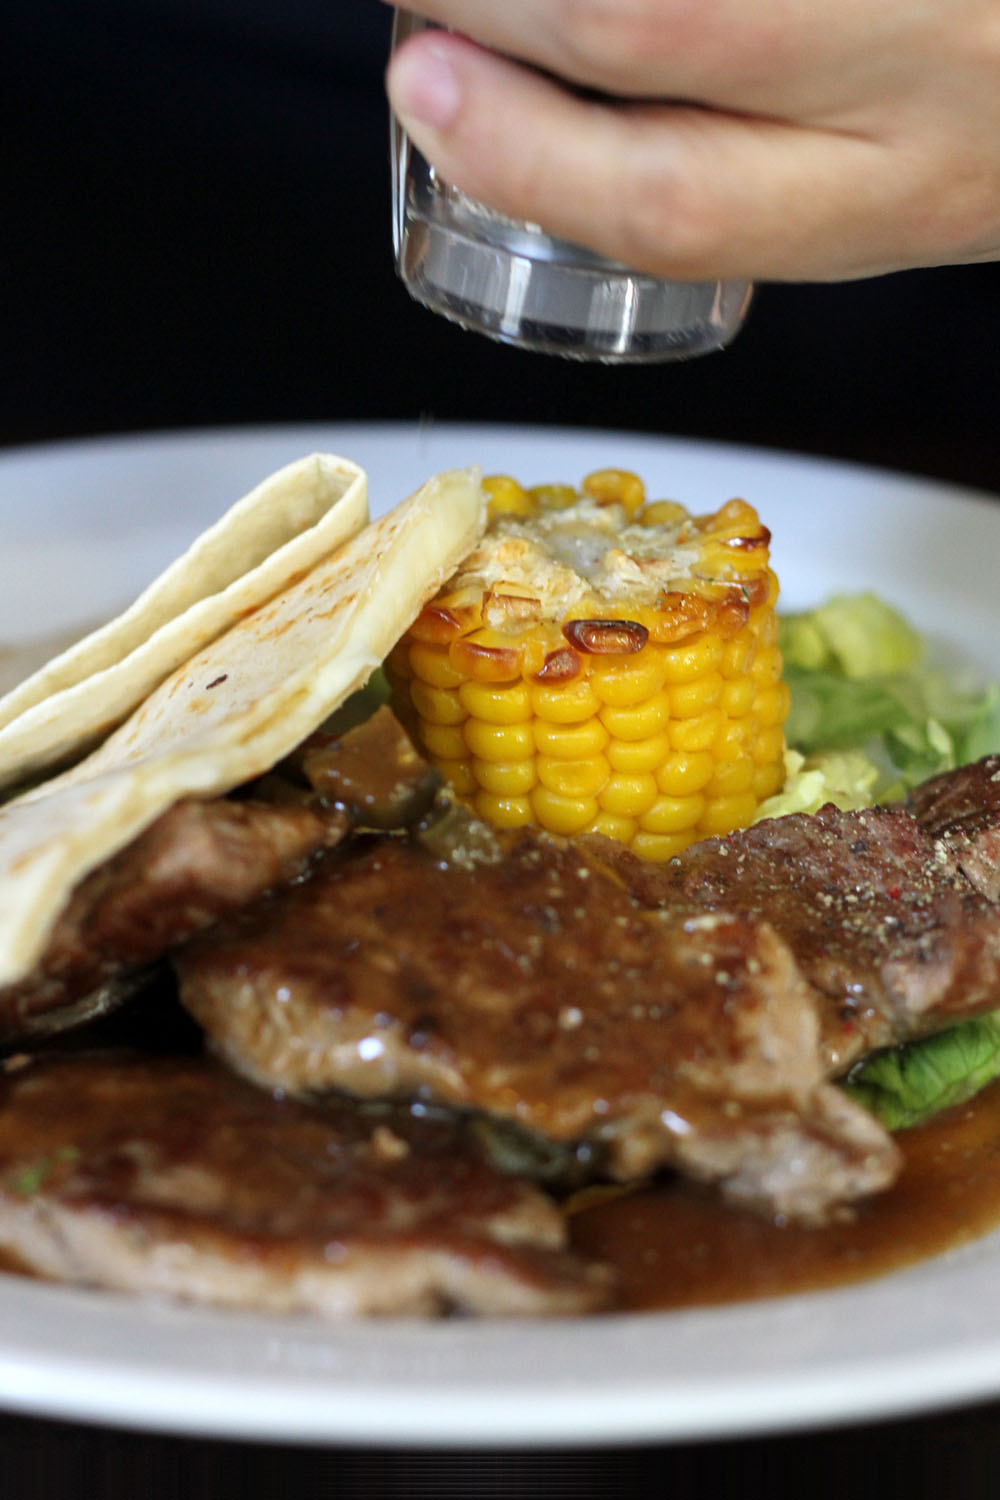 Medallions of pork with jalapenos, grilled corn and cheese quesadillas